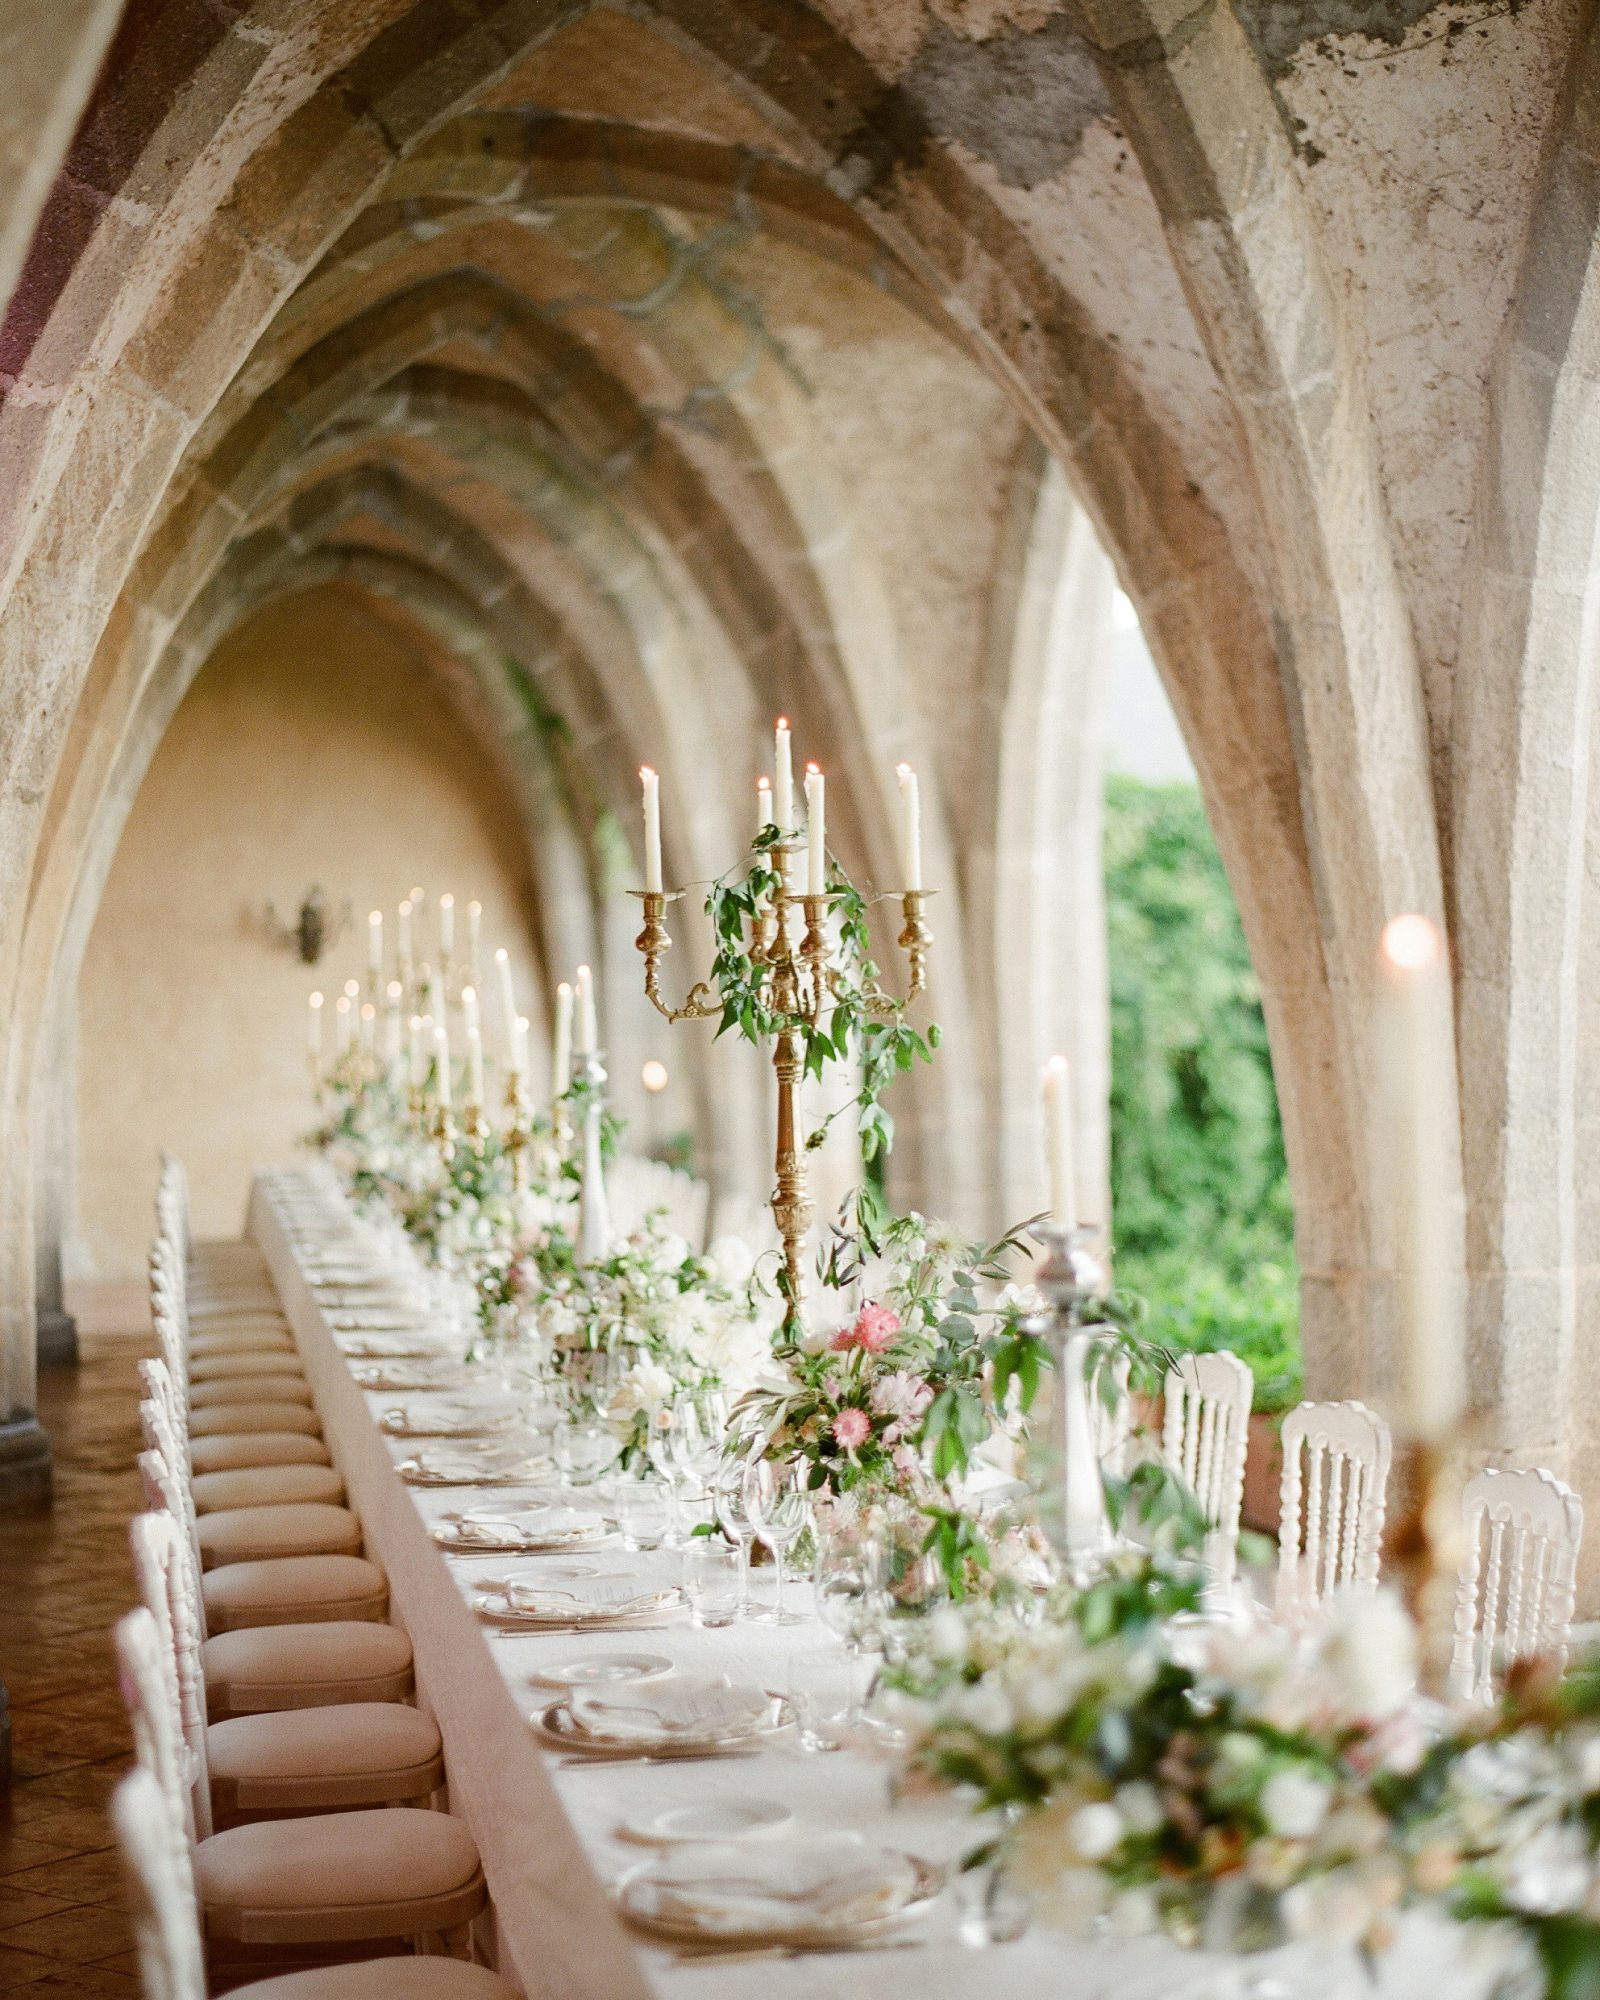 lisa greg italy wedding table tablescape candles arches